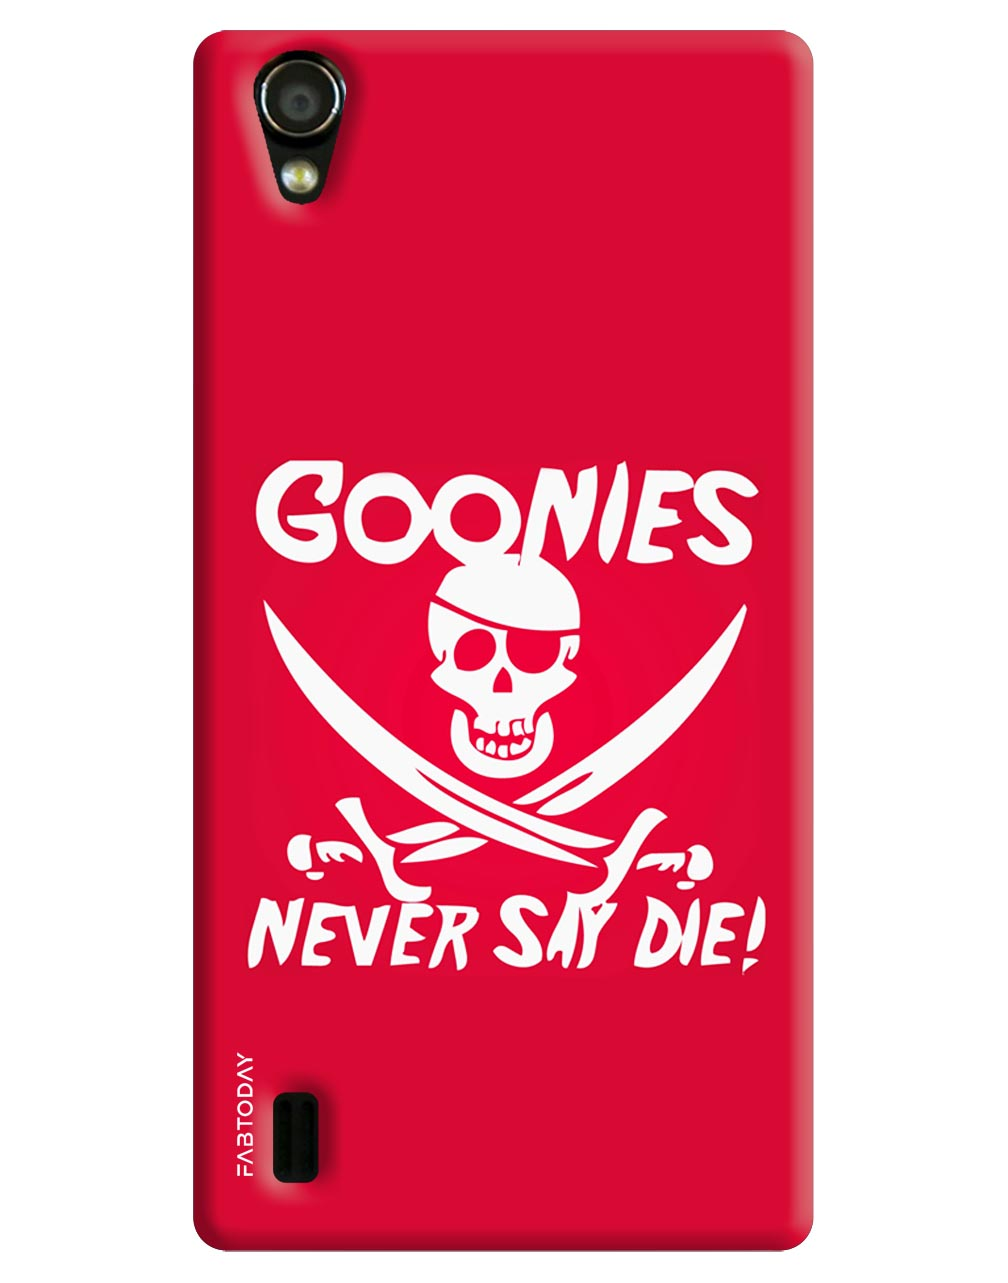 Gonnies Never Say Die Back Cover for Vivo Y15